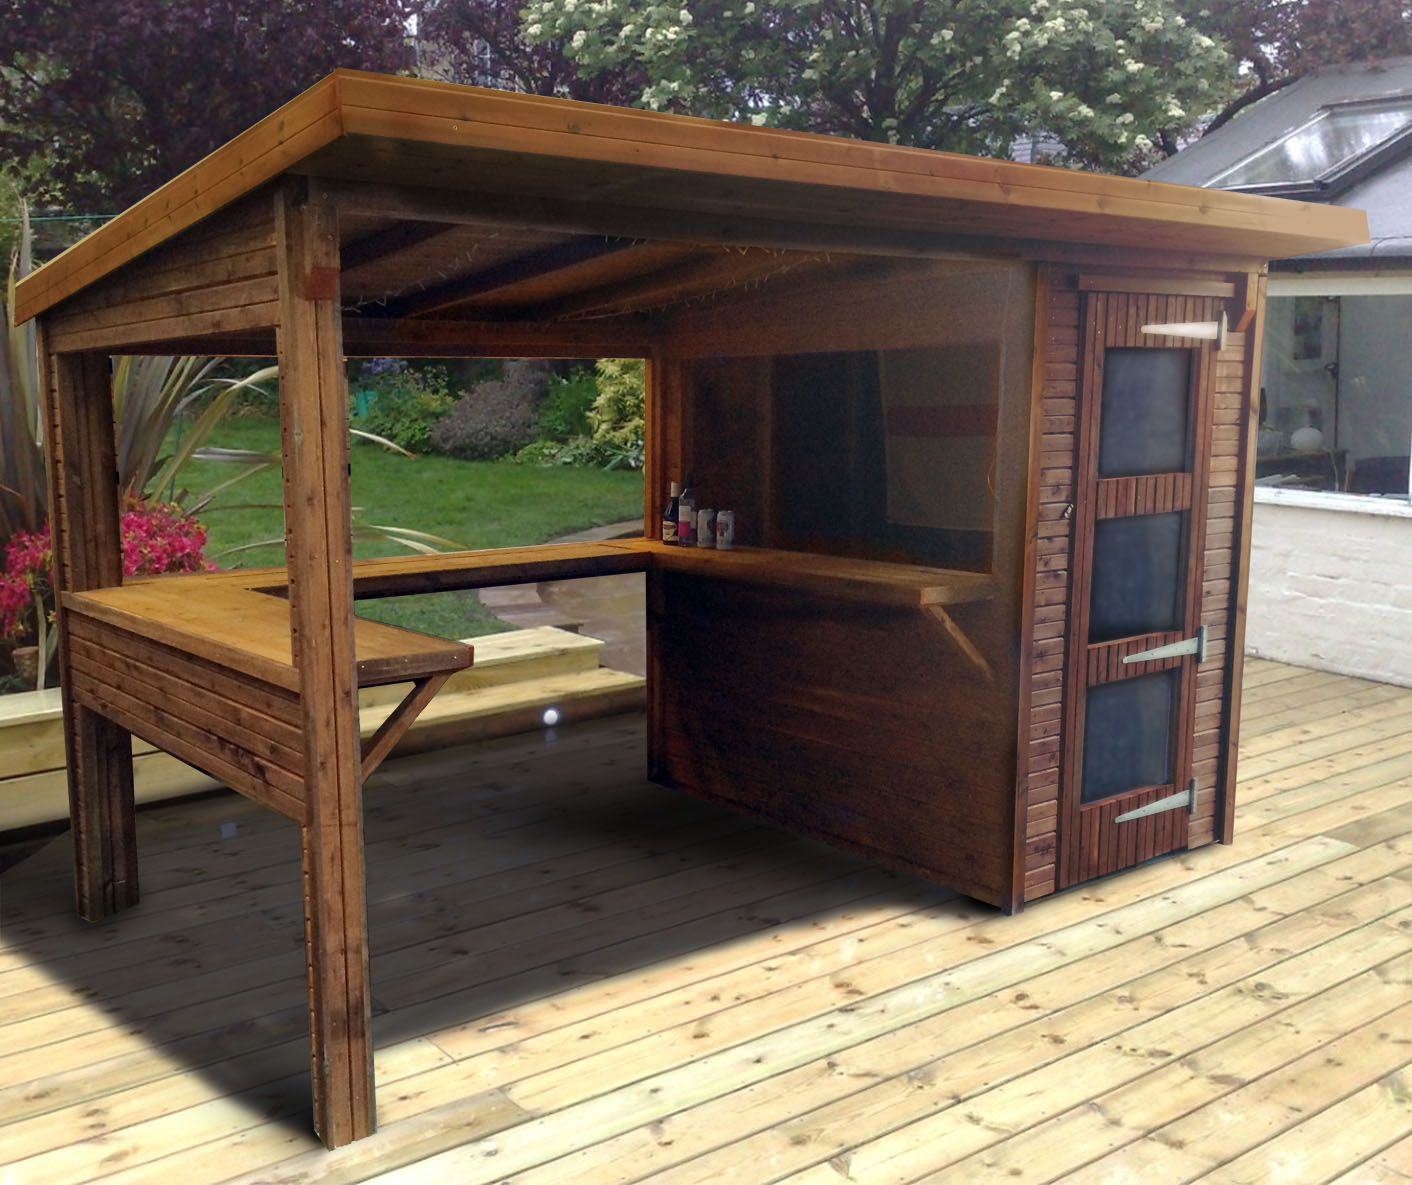 Beast bar sports bar shed back yard pinterest for Garden shed bar